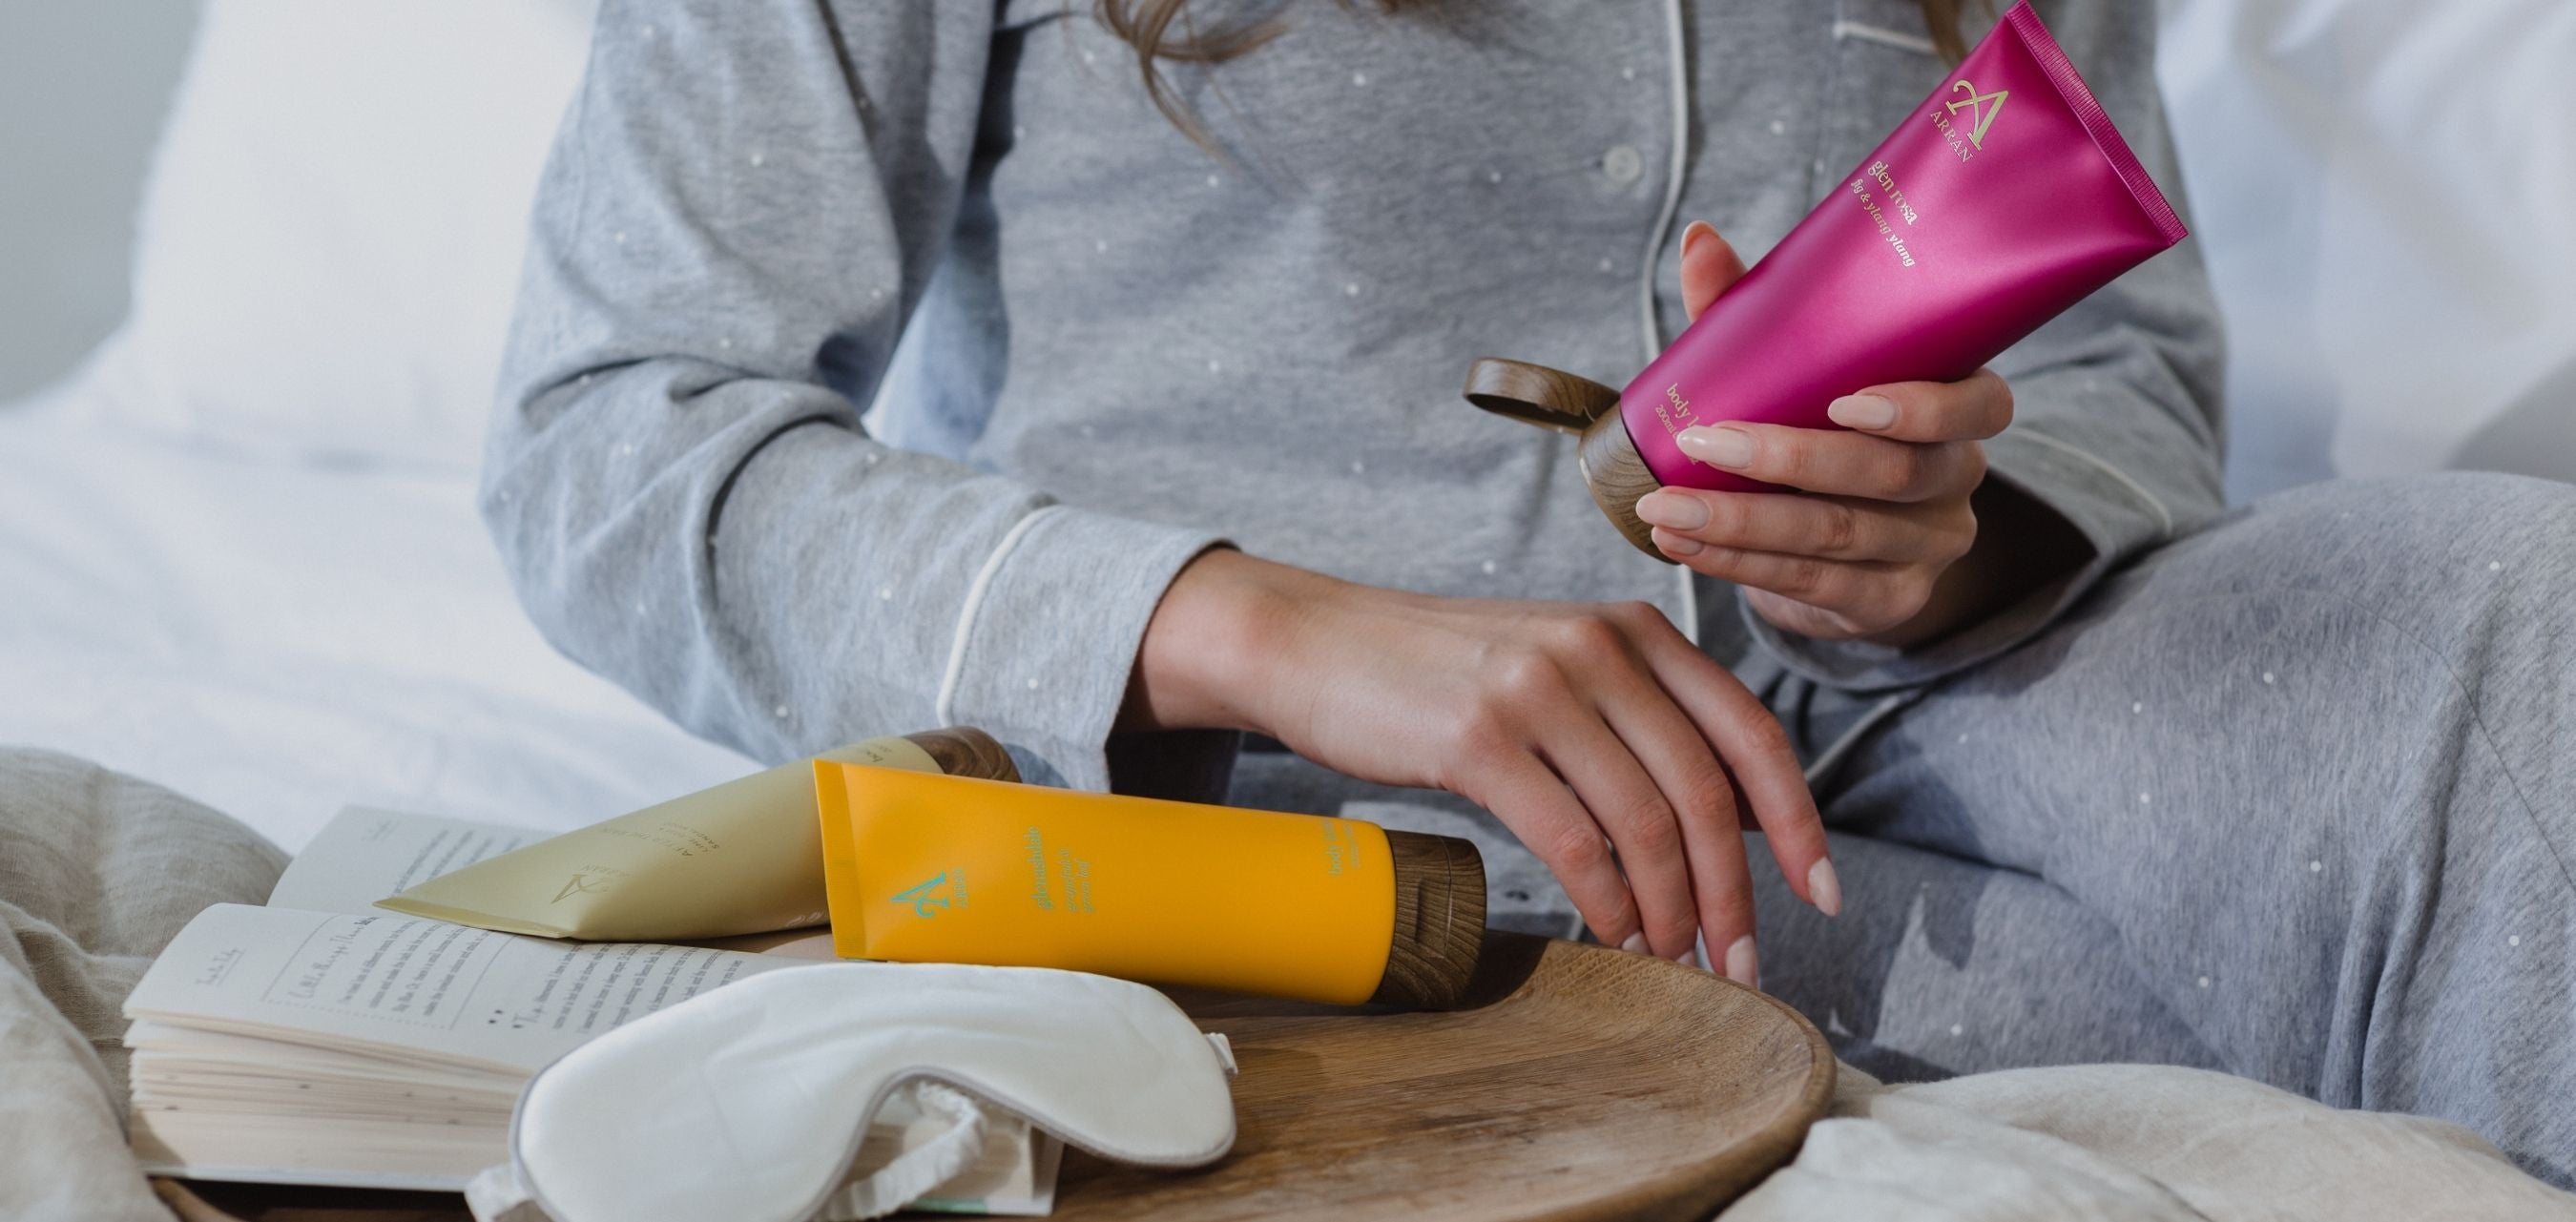 Image of woman in bed applying Body Lotion to hand.